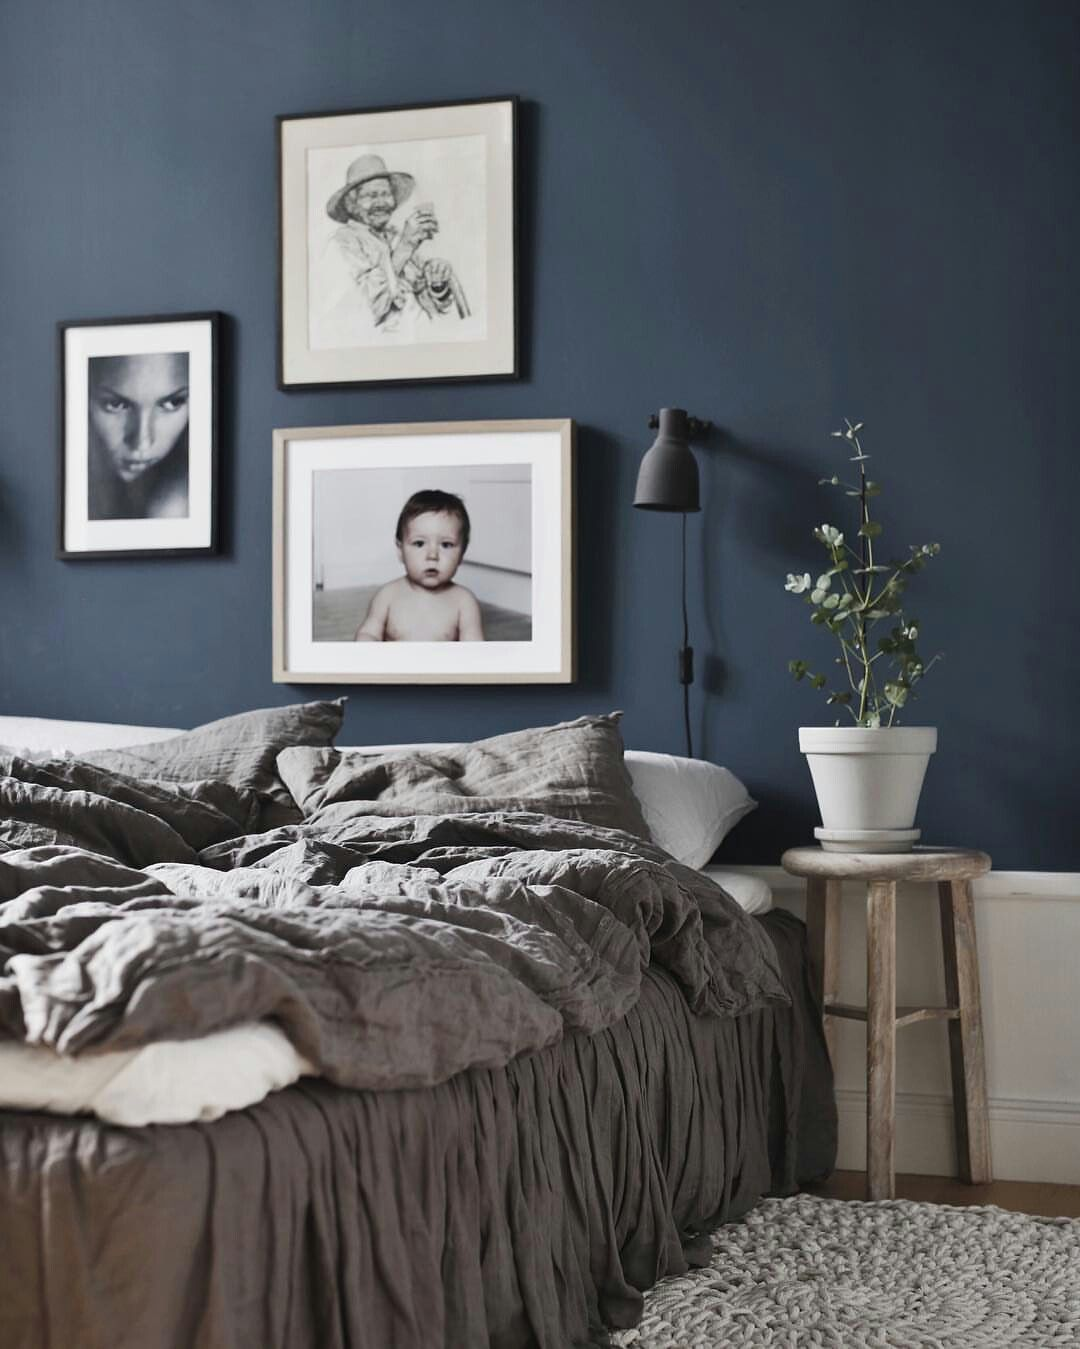 Dark Blue Bedroom Wall Dark Blue Bedroom Walls Blue Bedroom Dark Blue Bedrooms